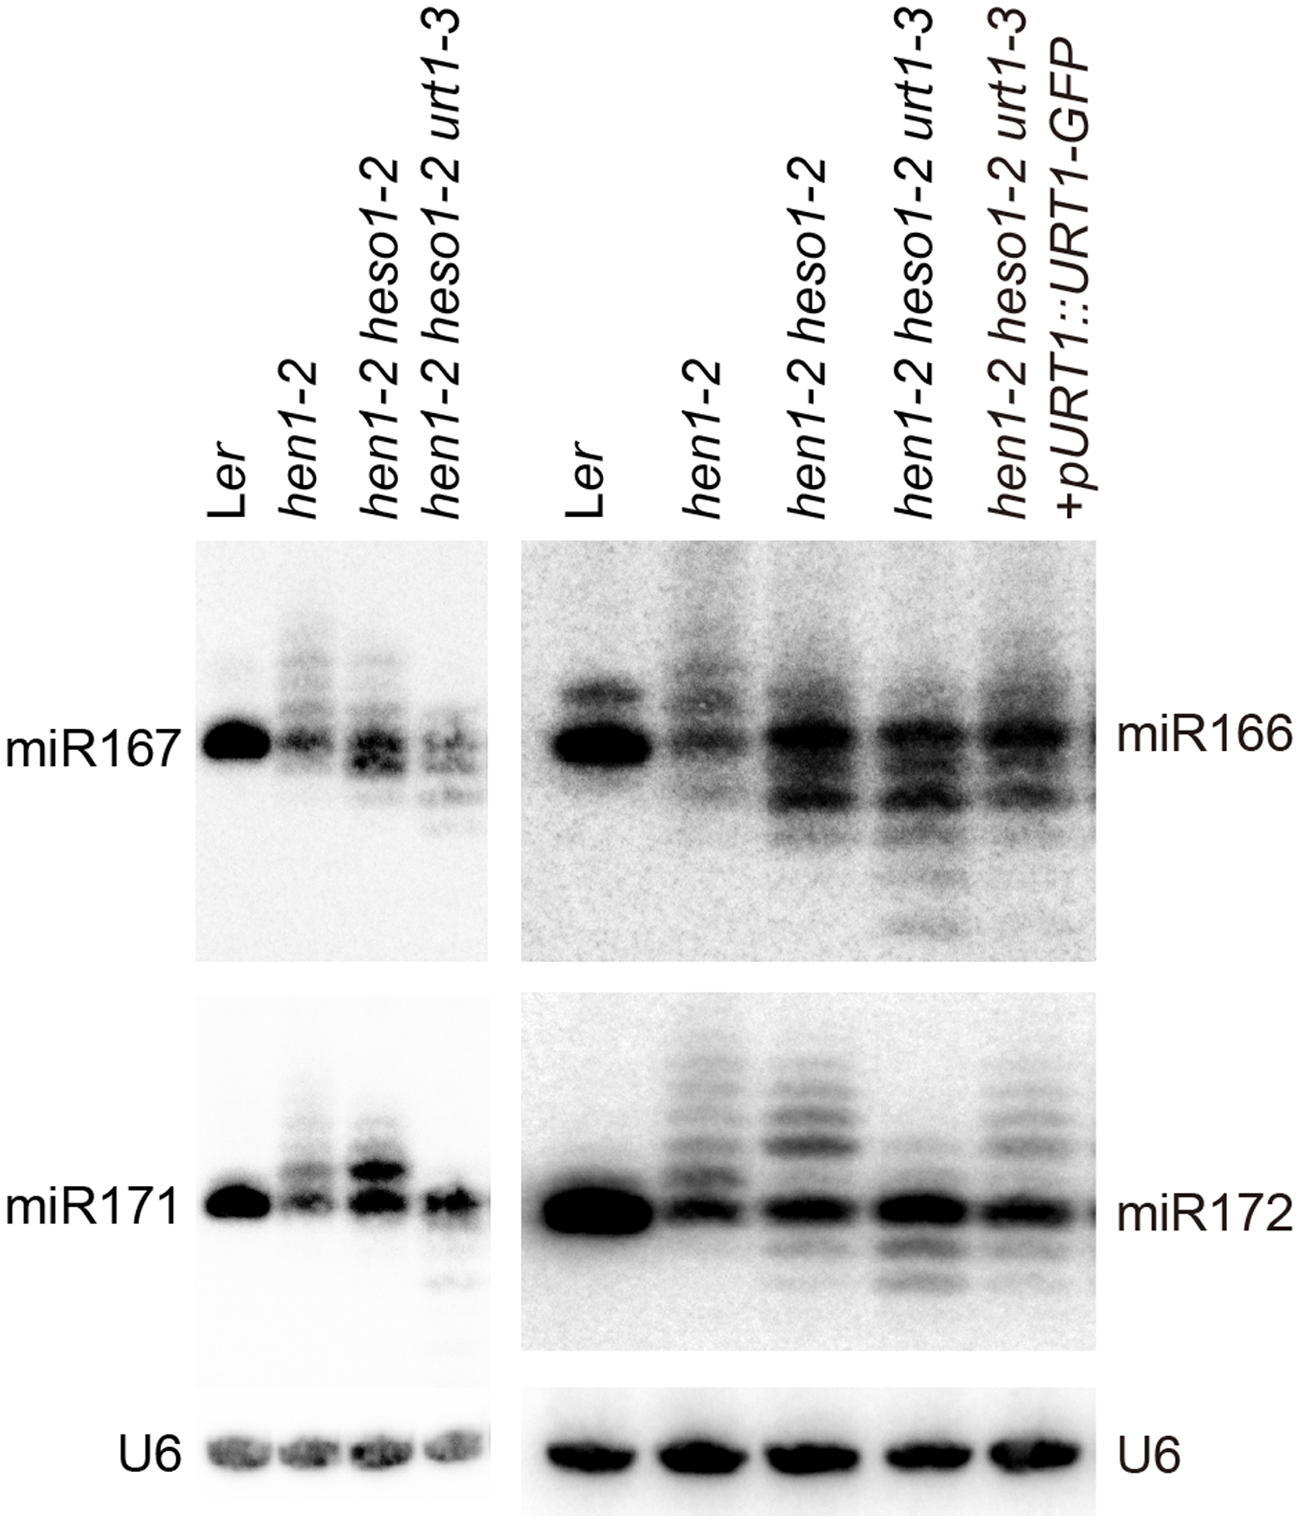 Small RNA northern blot analysis of miR167, miR166, miR171 and miR172 in various genotypes.